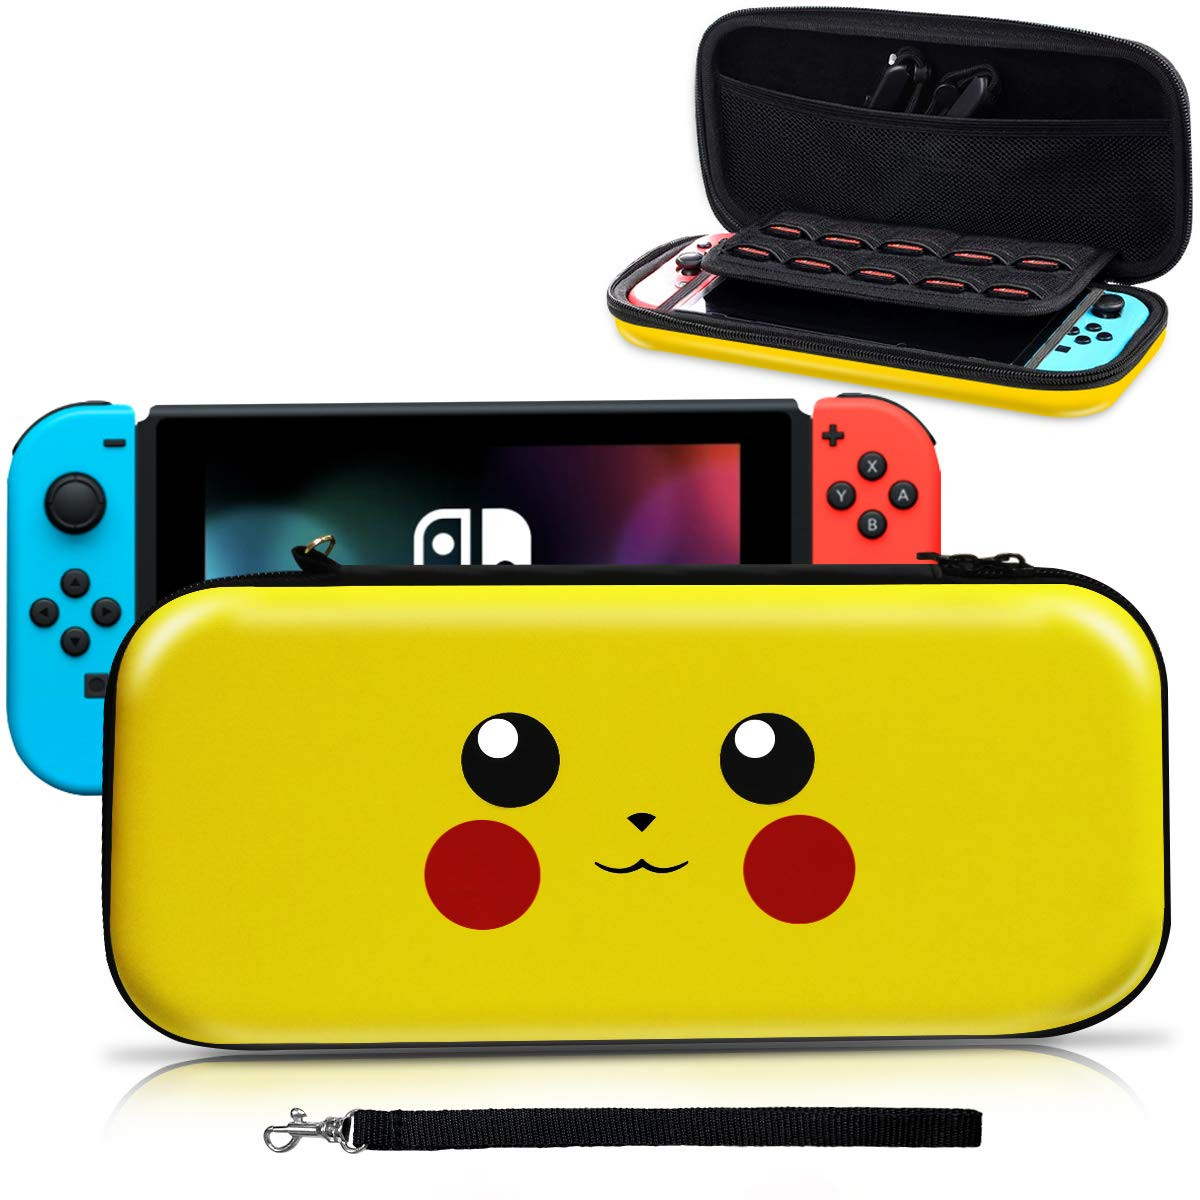 [Indonesia Direct] Cute Cartoon Travel Case Bag Carrying Case for Nintend Switch Pikachu